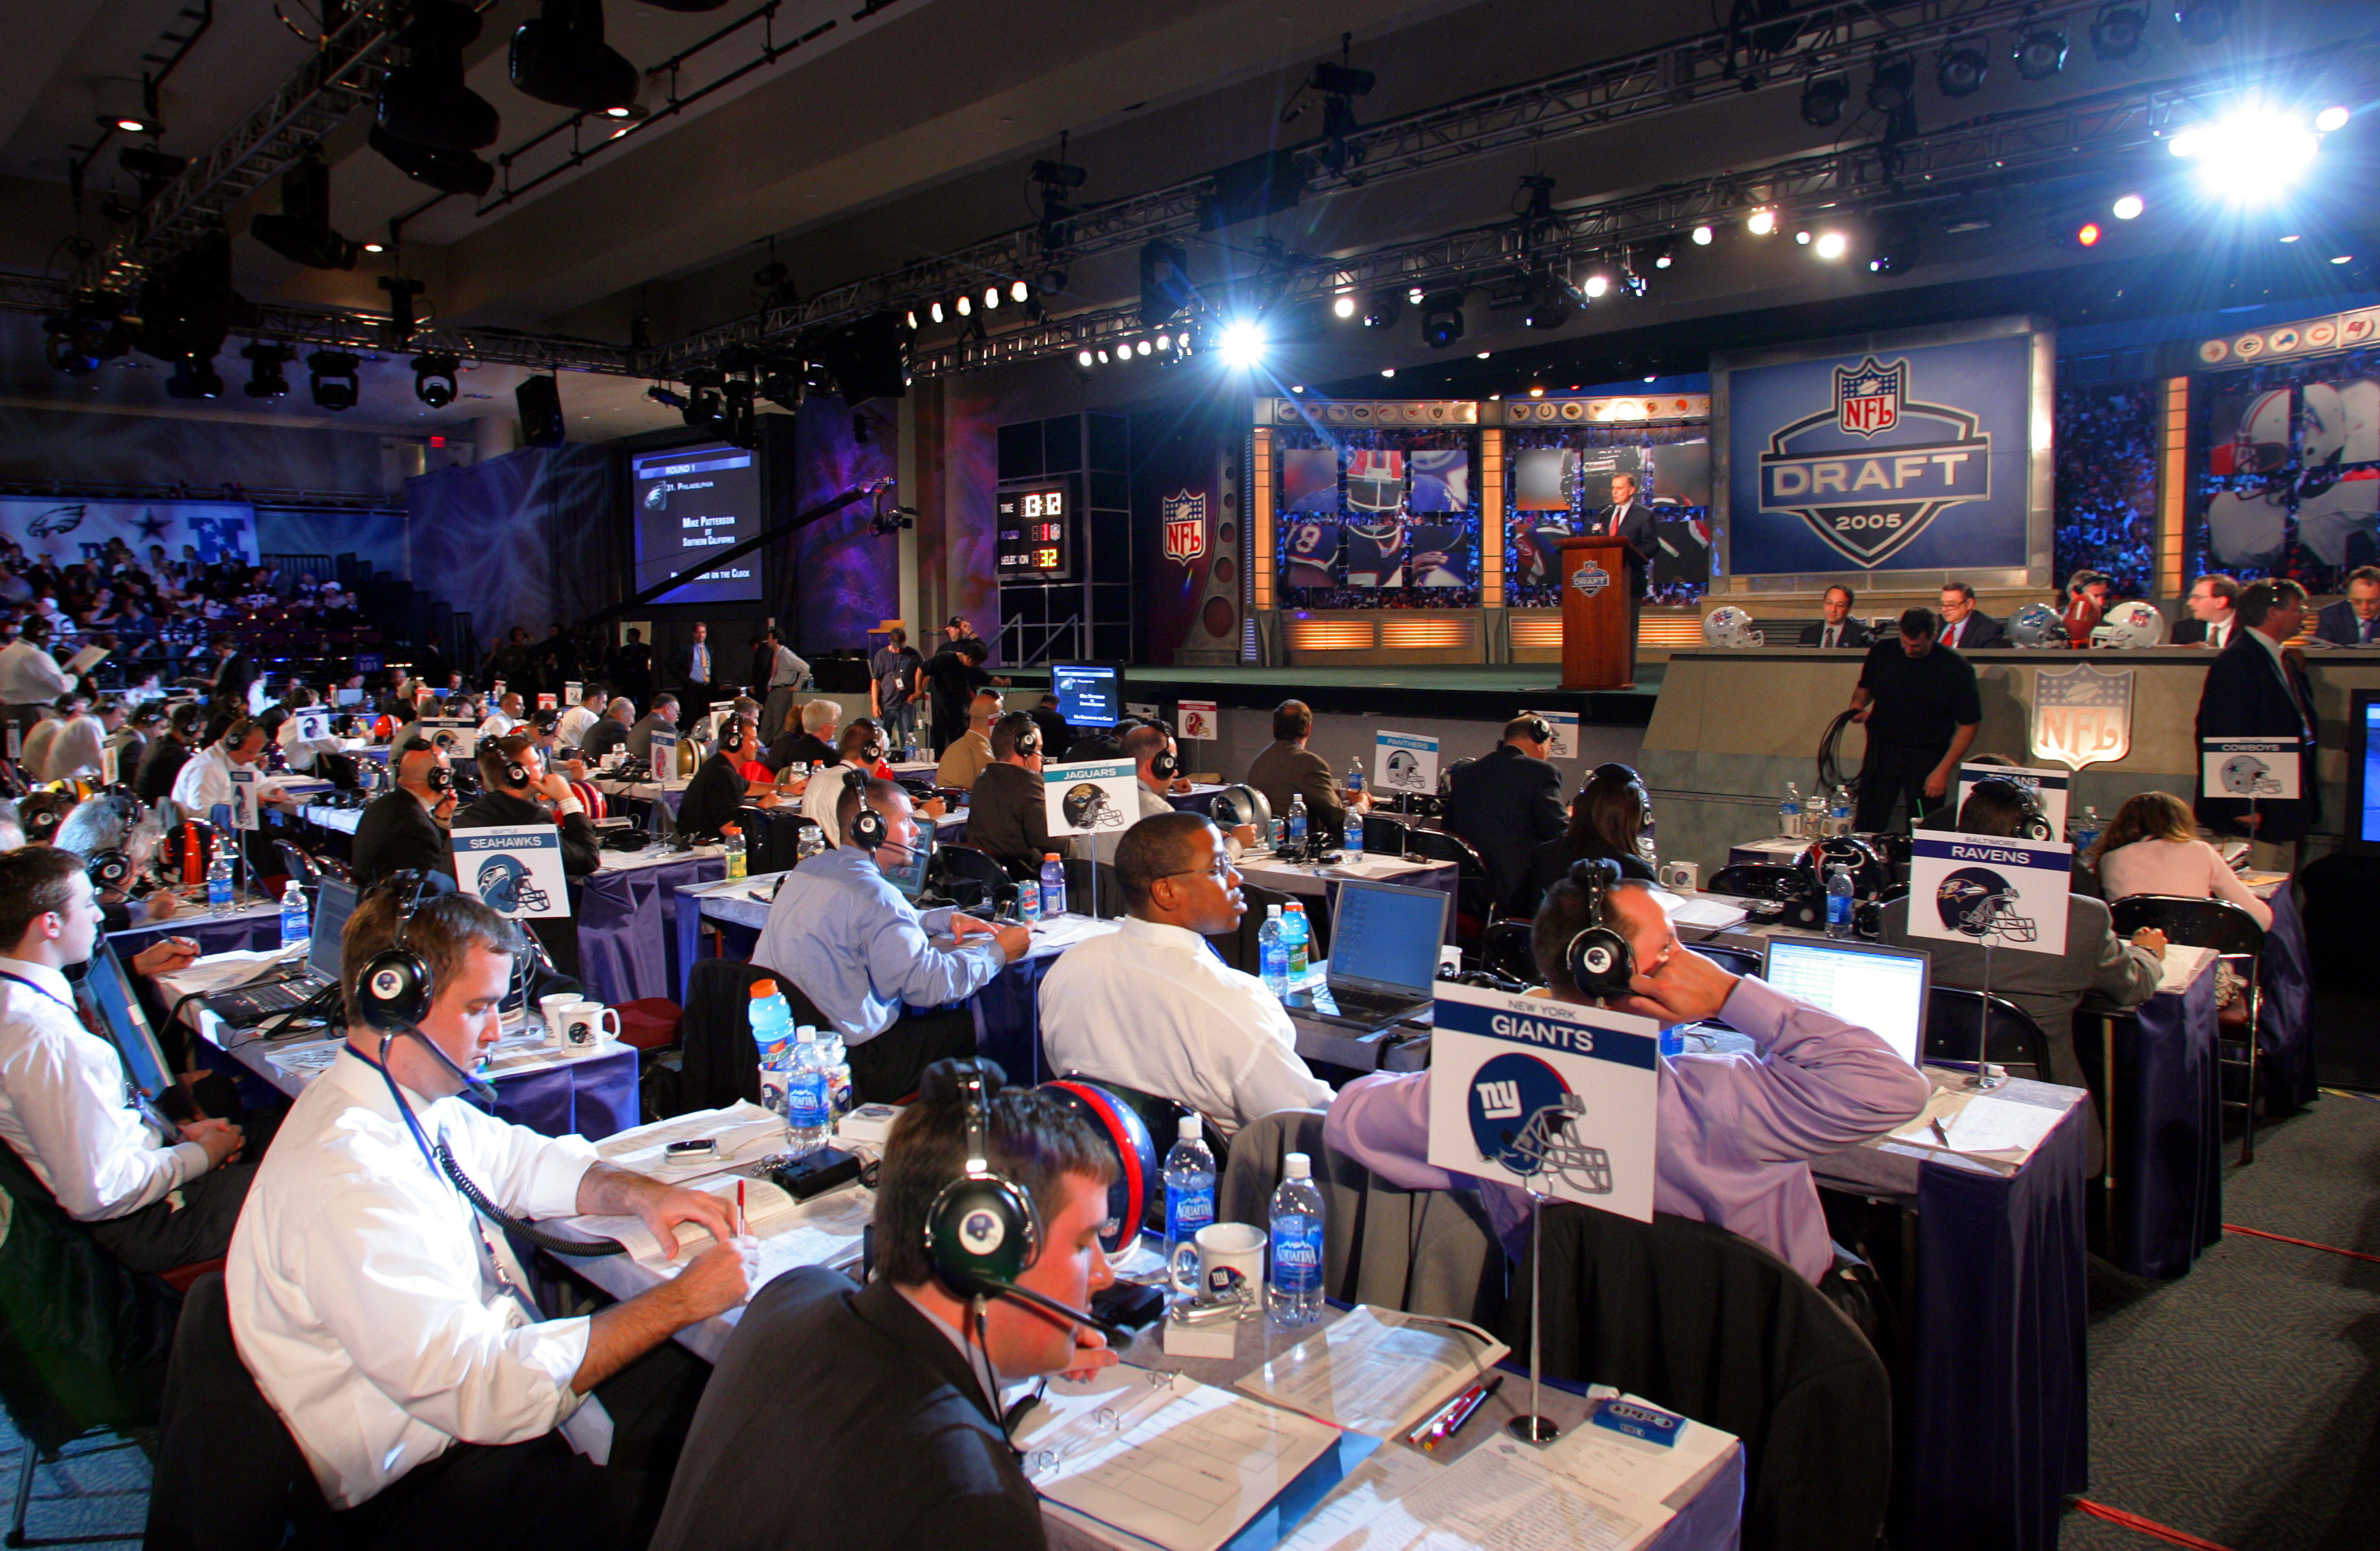 NFL expanding TV coverage for NFL Draft with ABC, Fox broadcasts